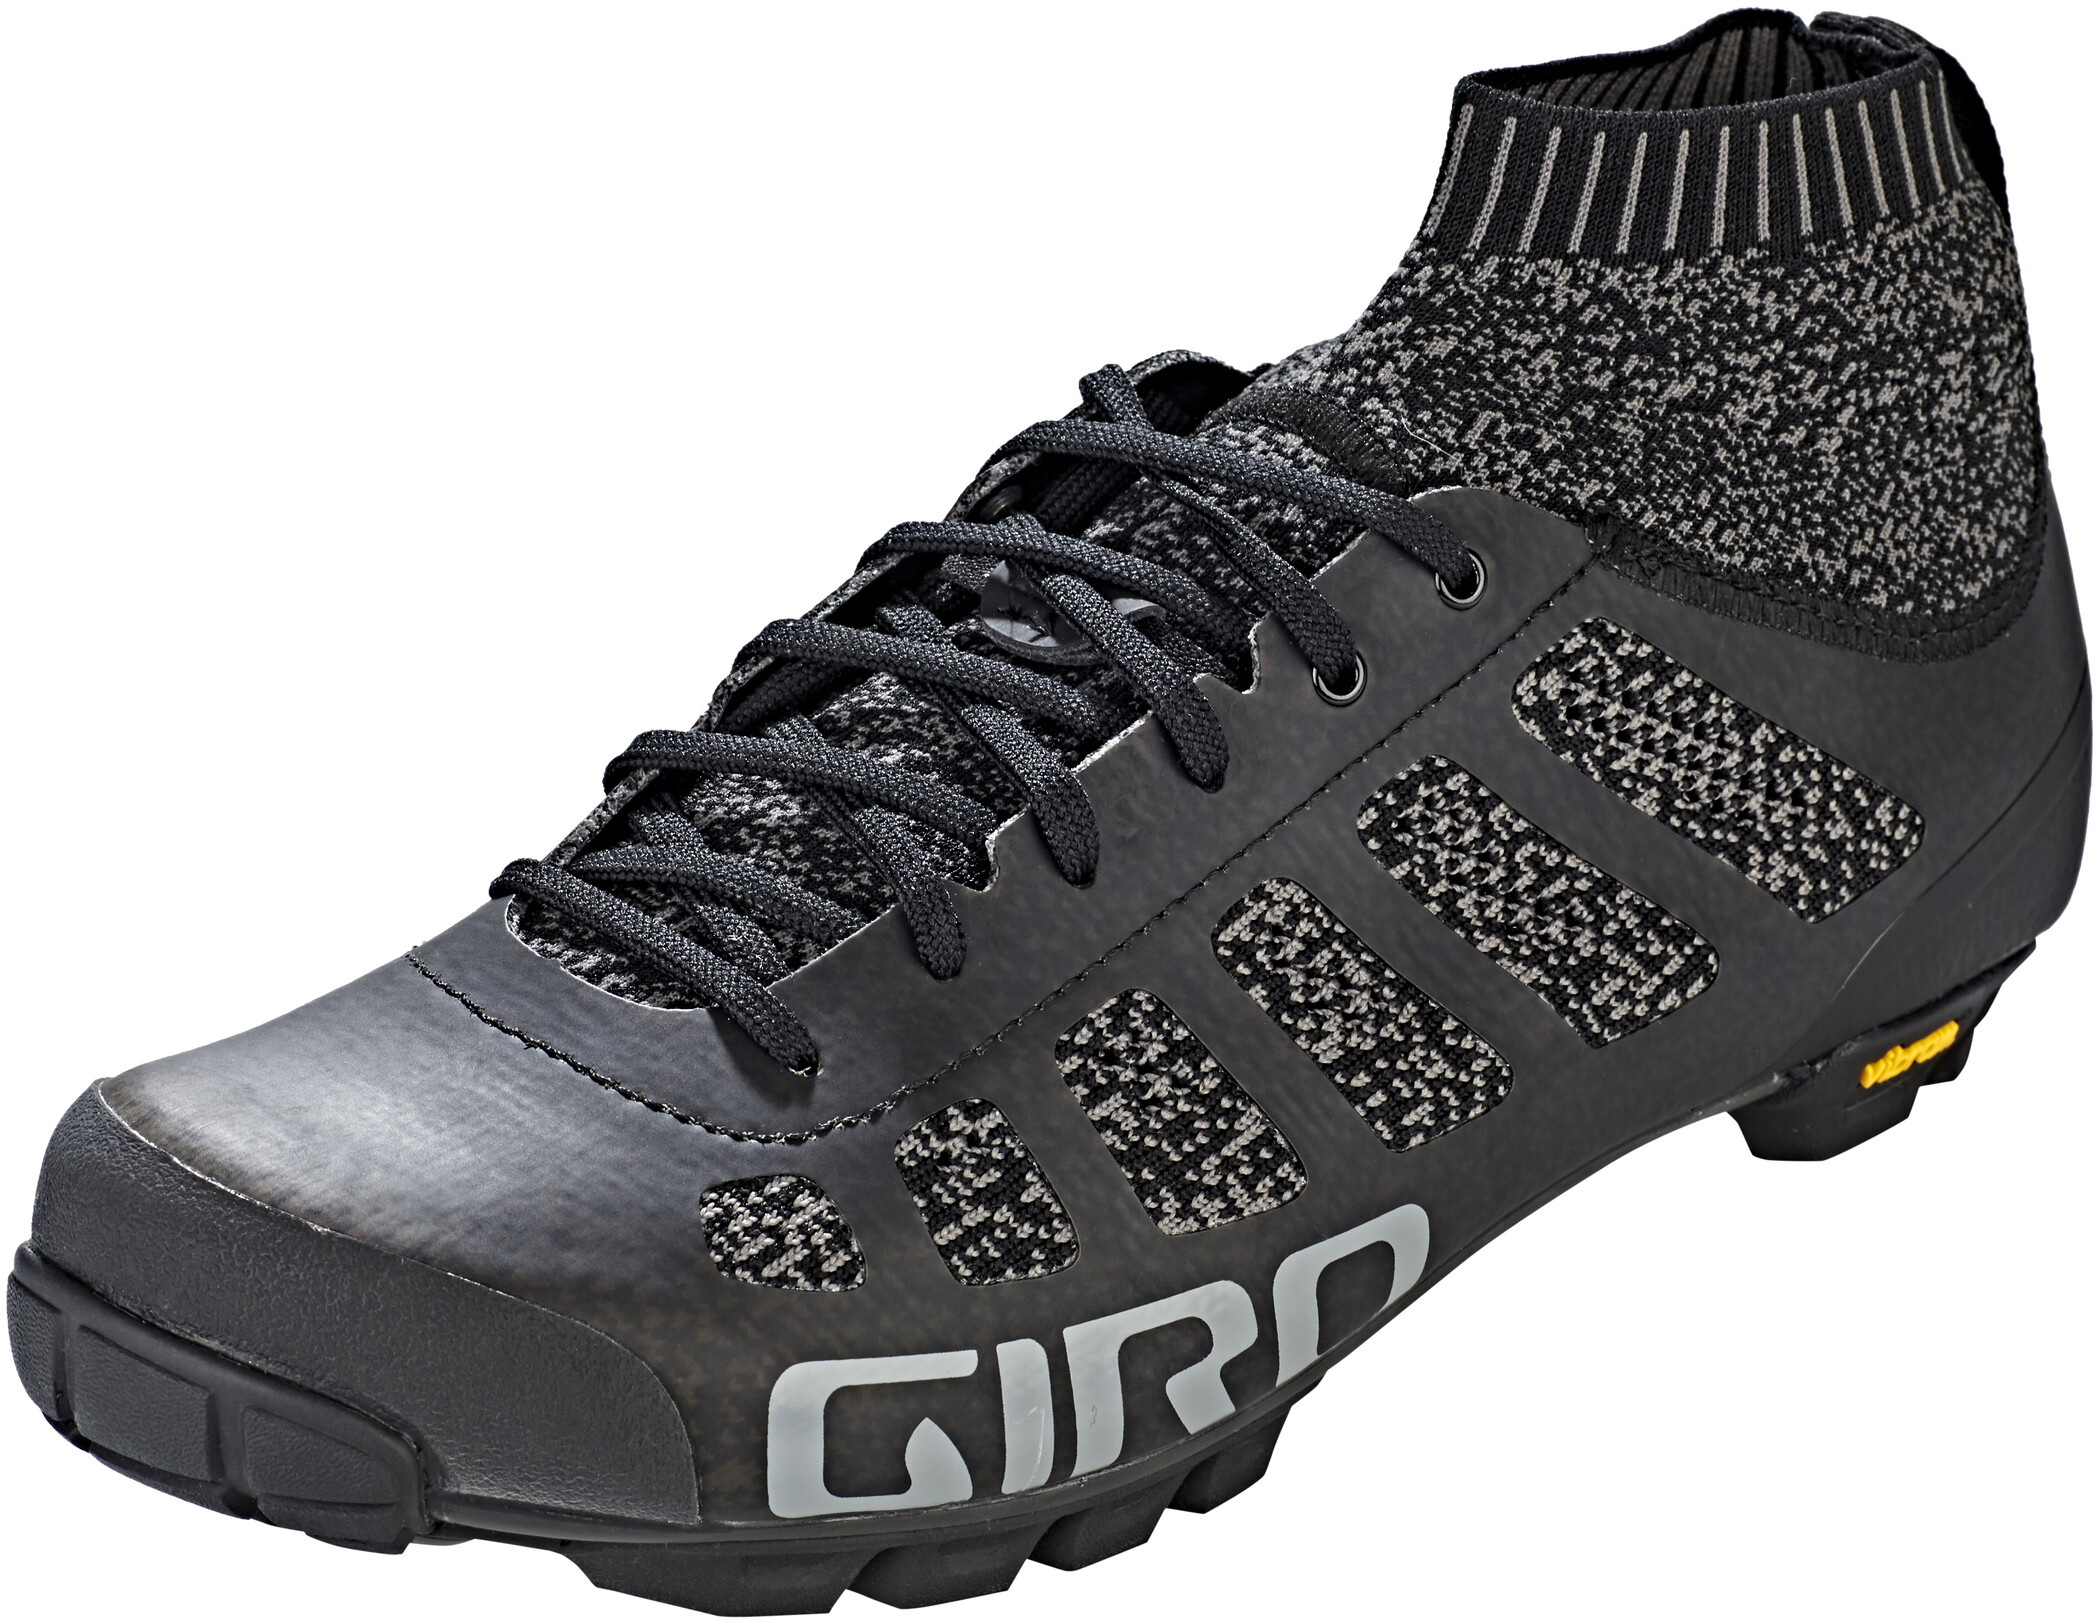 Giro Empire Vr70 Knit Sko Herrer, black/charcoal (2020) | Shoes and overlays